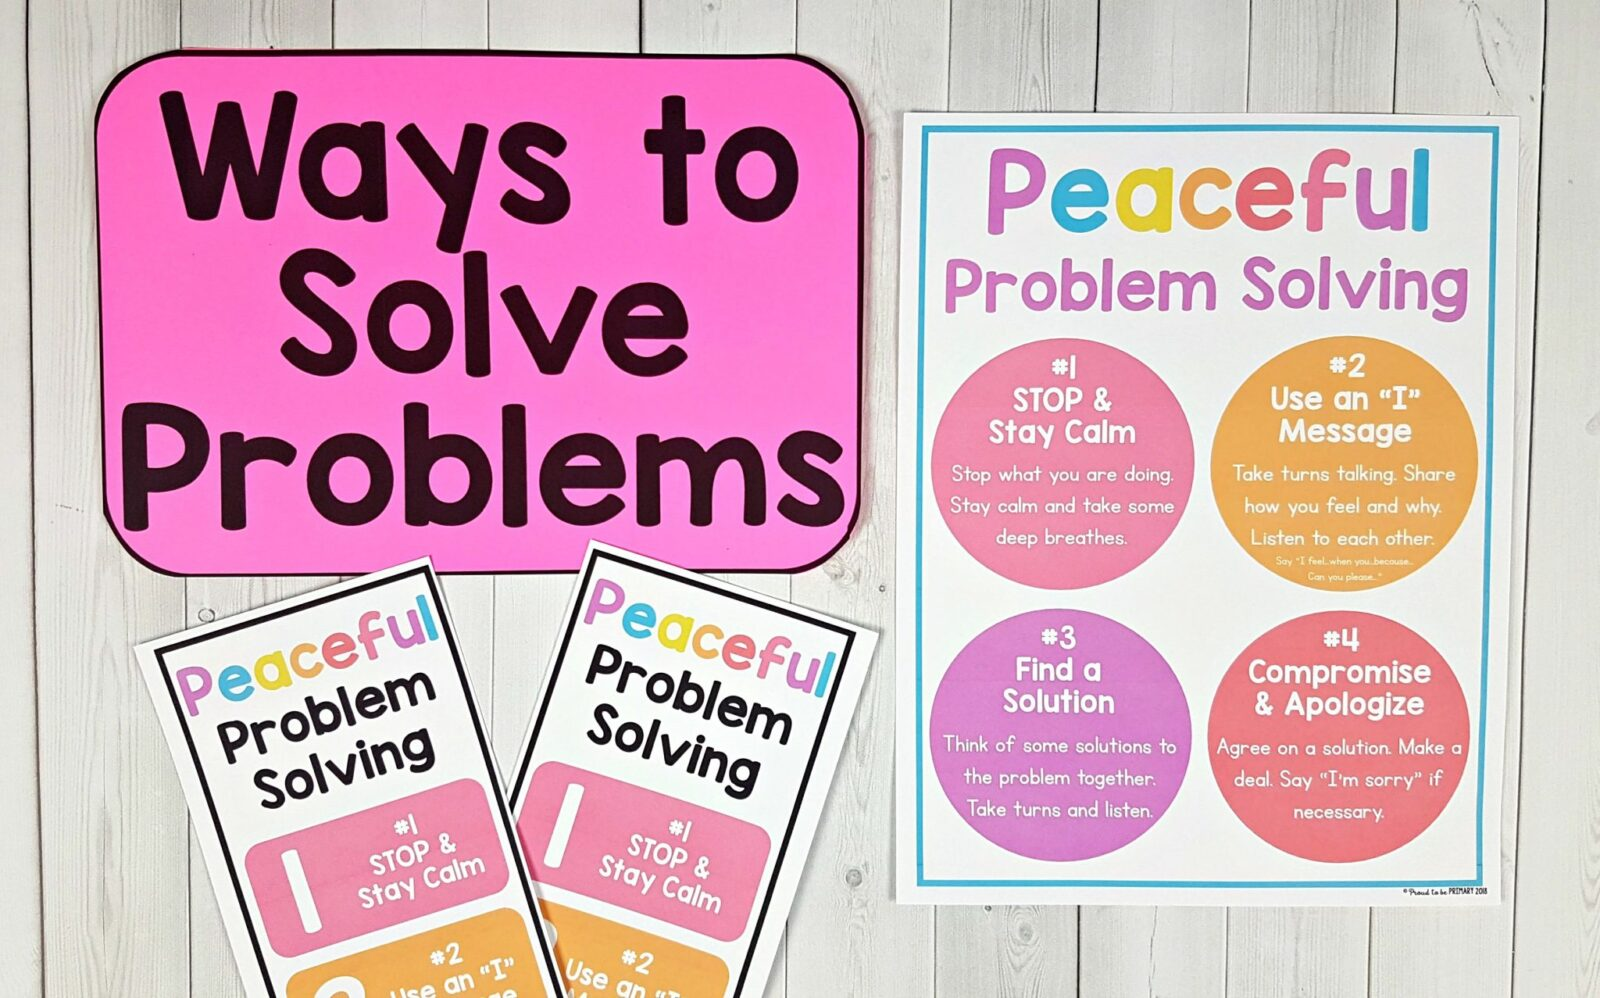 conflict resolution activities - ways to solve problems posters